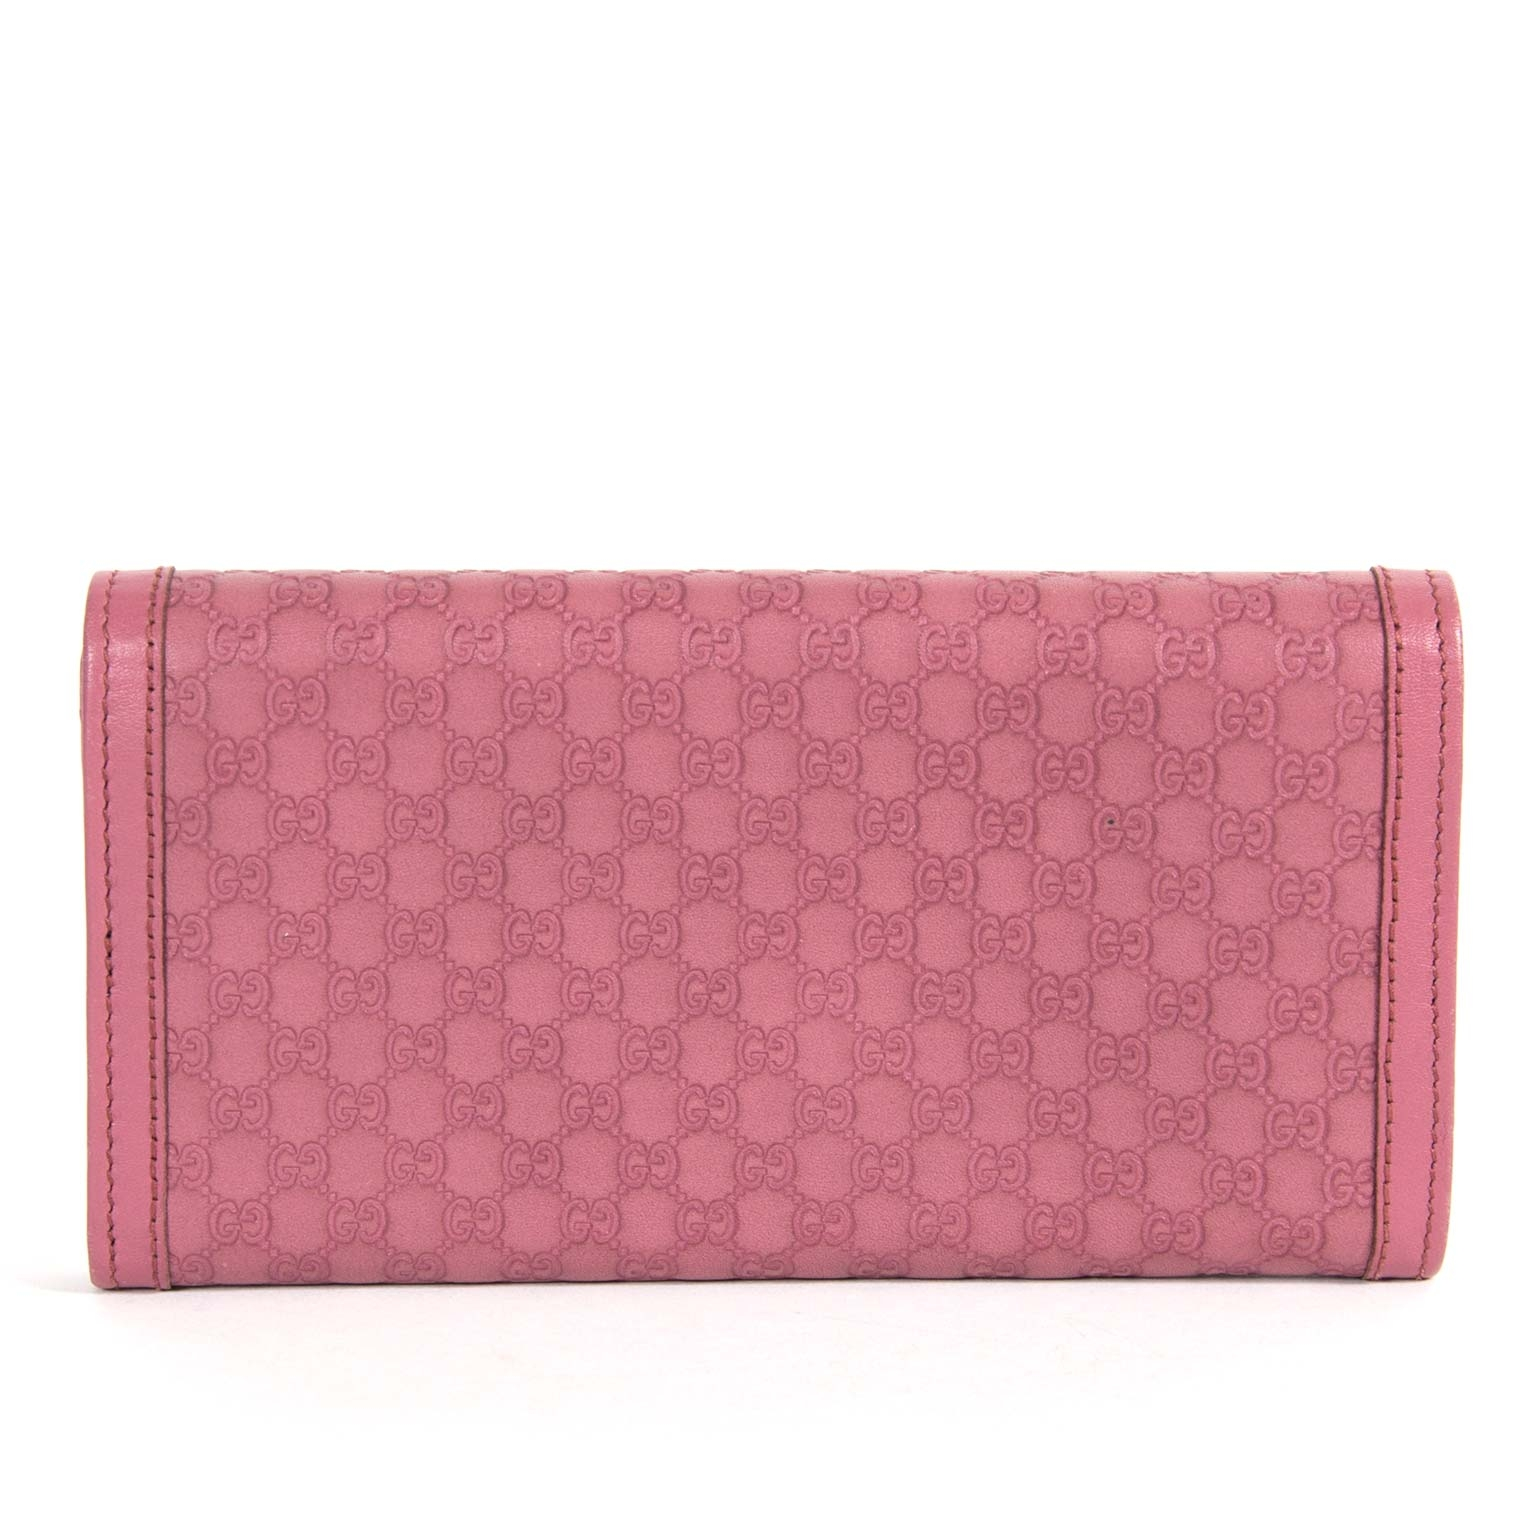 9534f5596891 ... gucci interlocking g monogram pink continental wallet now for sale at  labellov vintage fashion webshop belgium